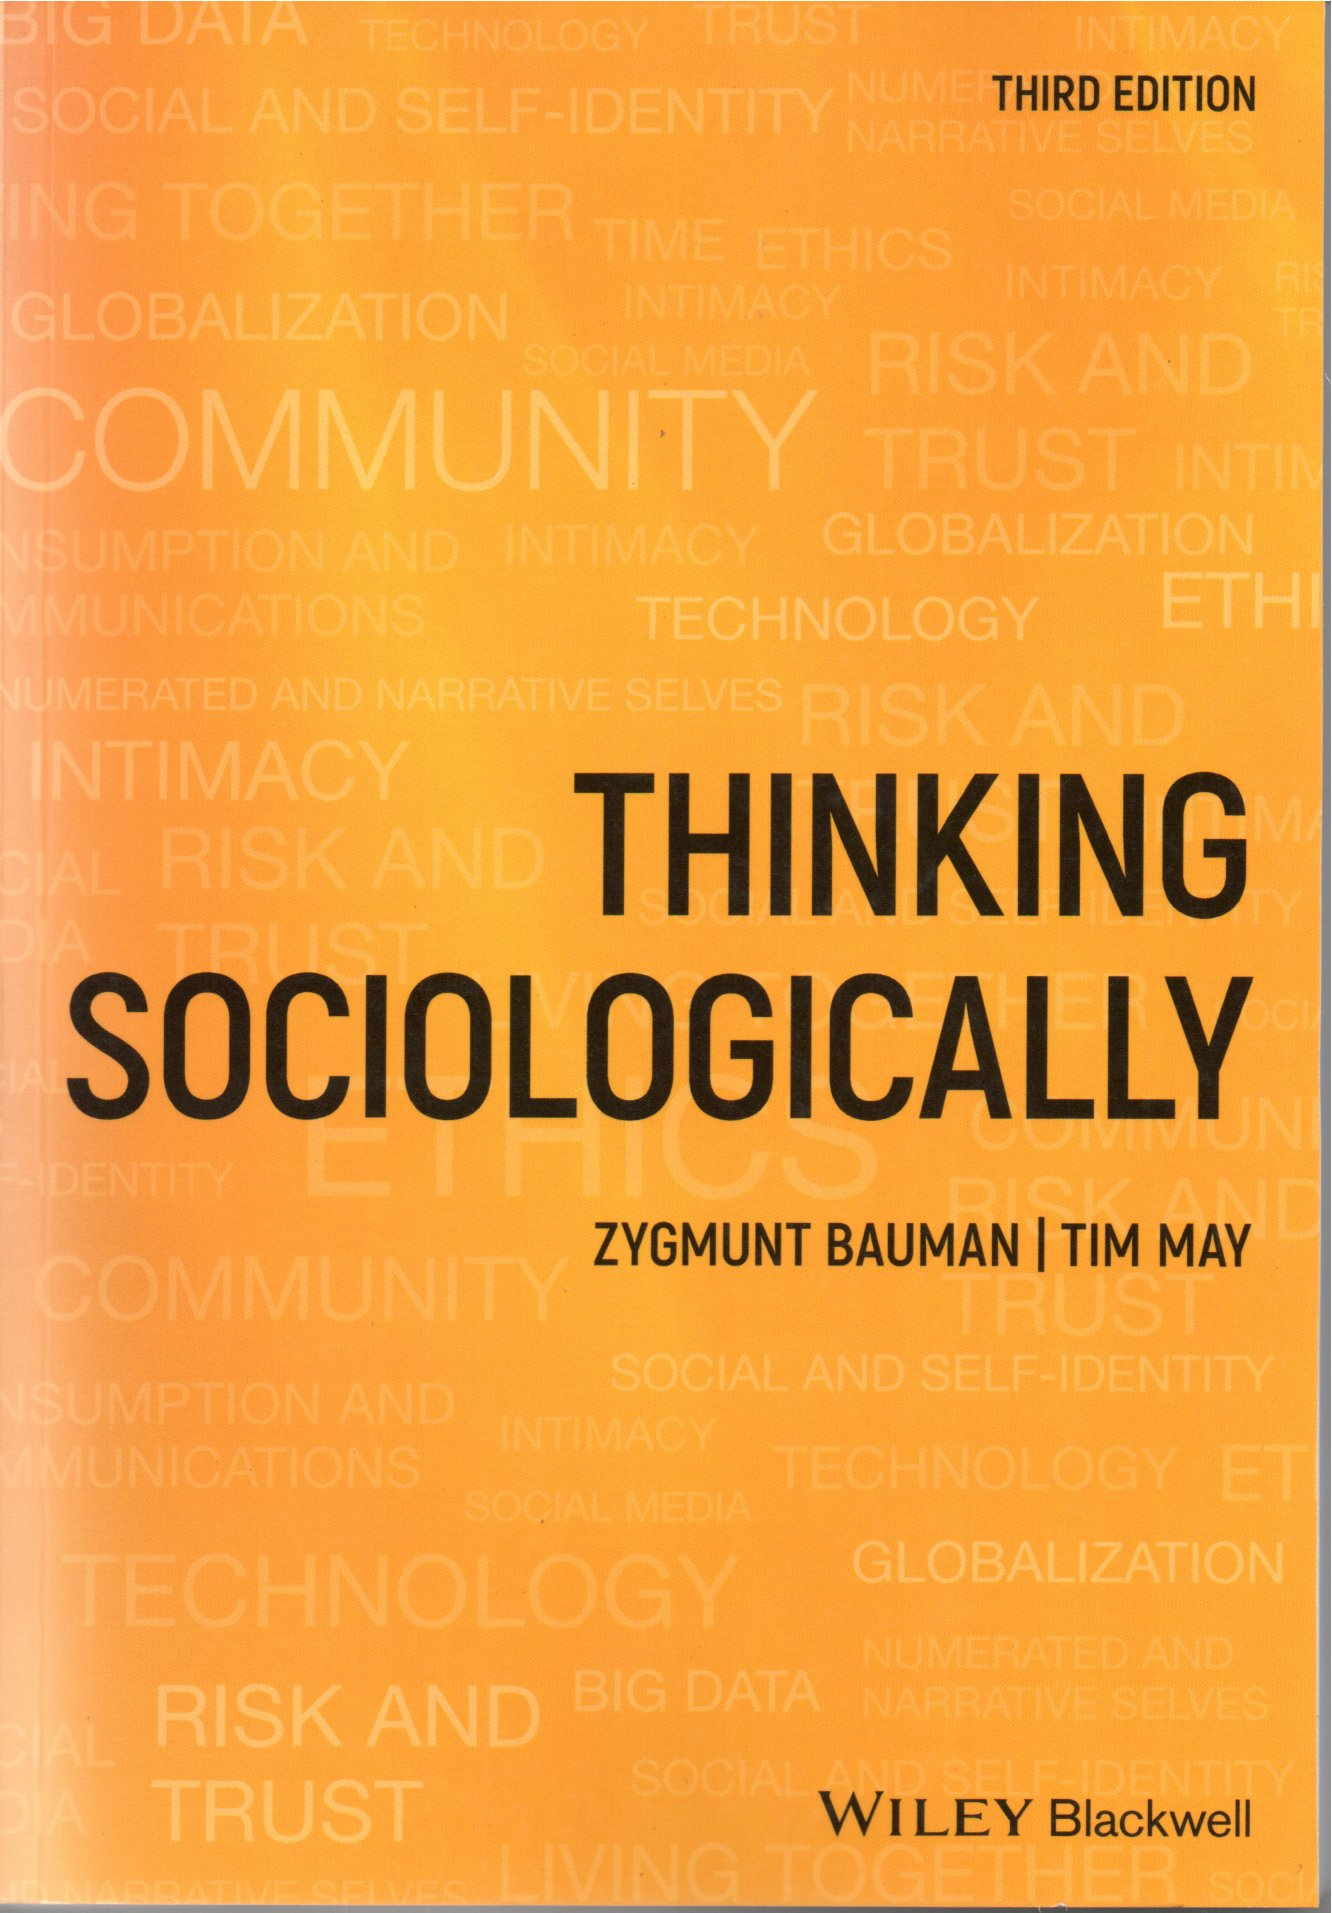 Thinking sociologically 3rd ed / Zygmunt Bauman